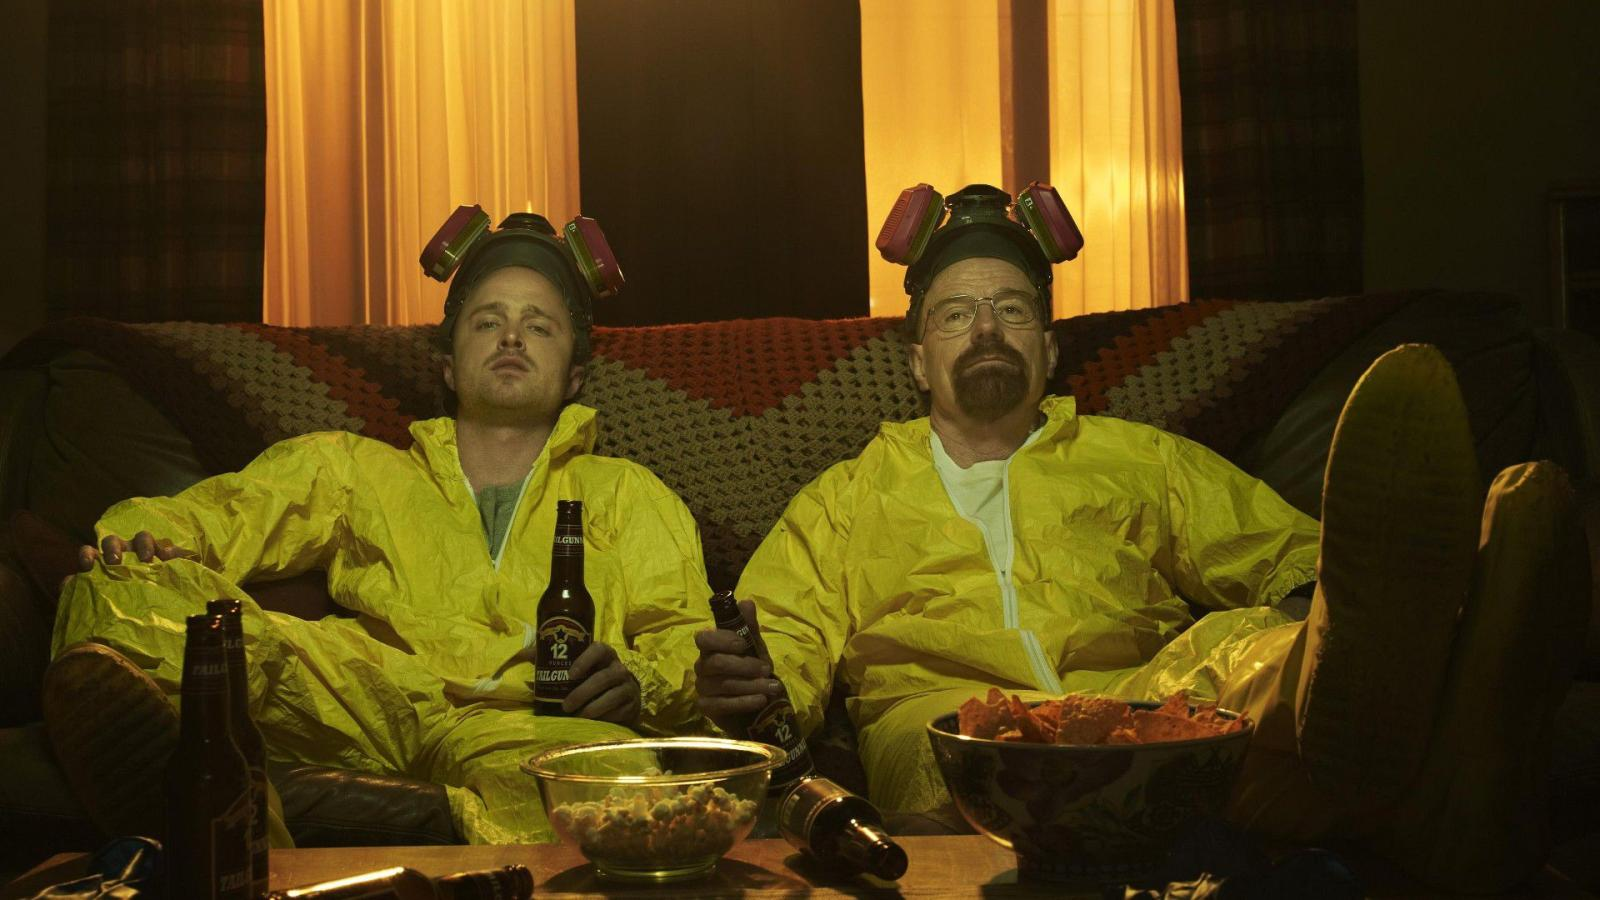 Netflix reveals the shows that introduced people to binge